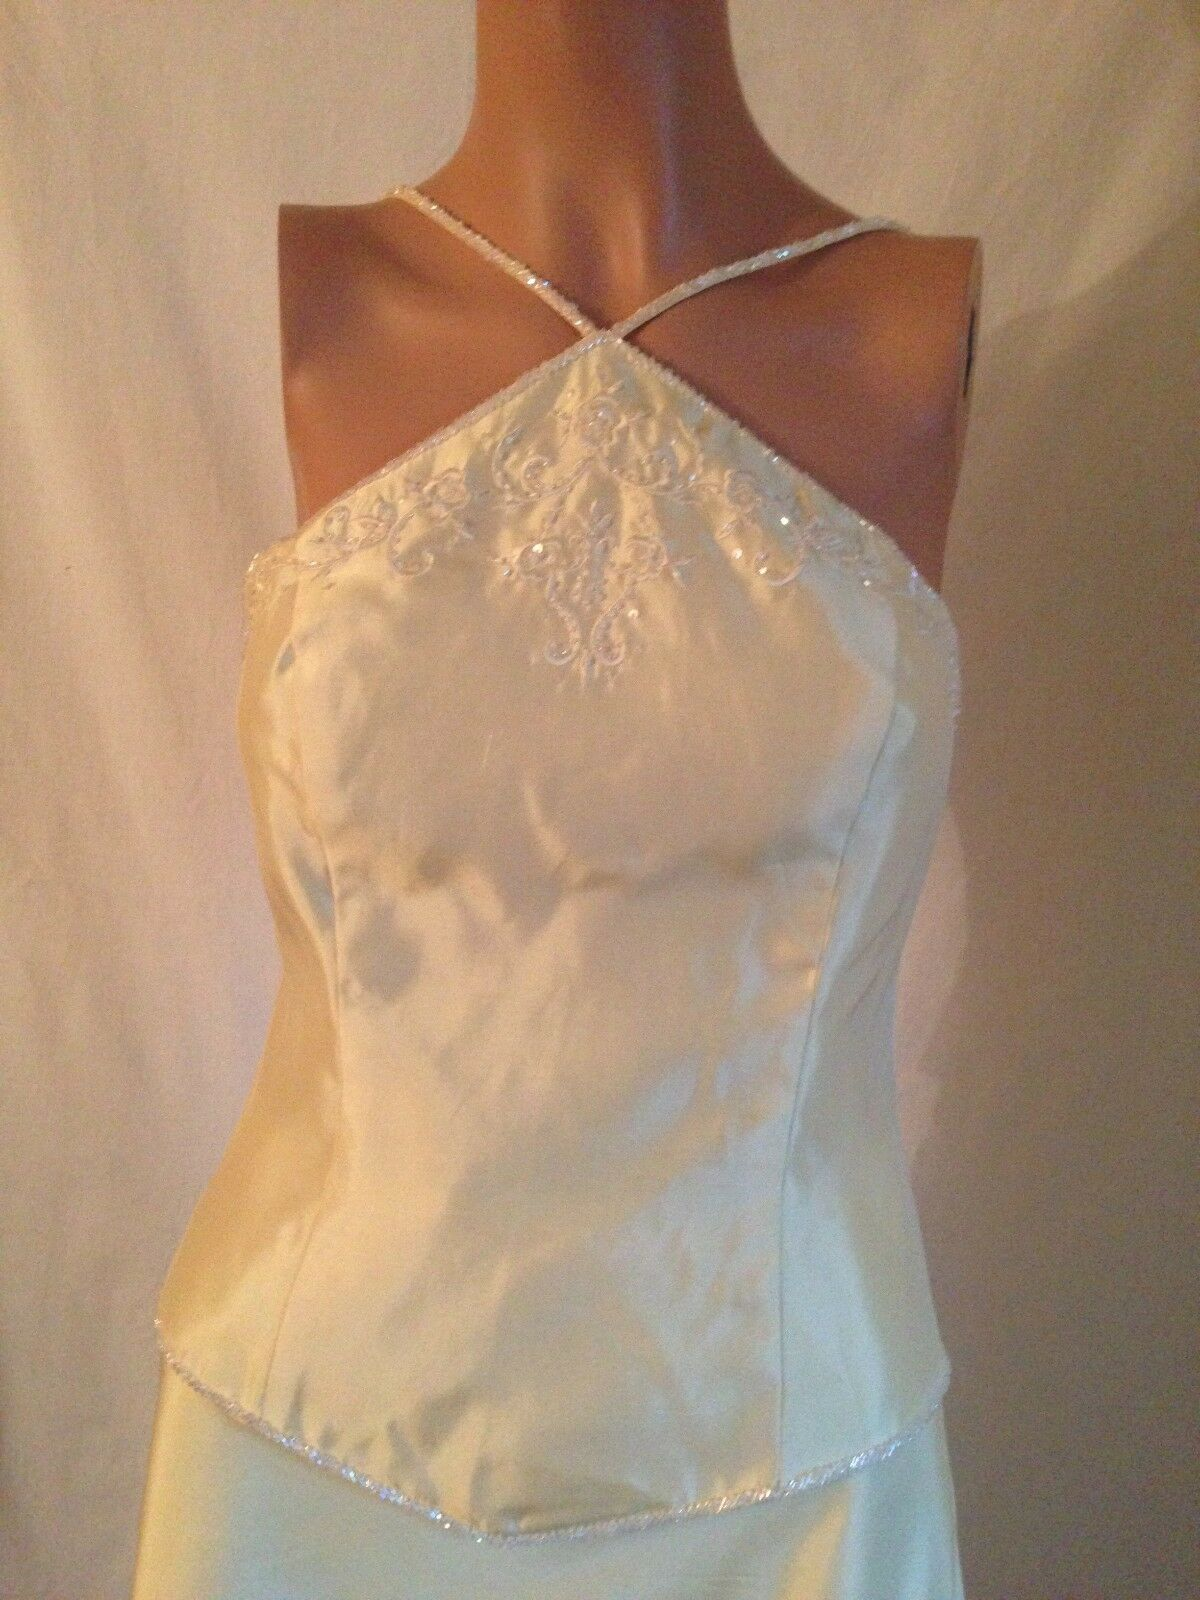 DAVID'S BRIDAL Gelb SLEEVELSS STRAP BEADED EVENING Kleid oben BLOUSE 4   S NEW